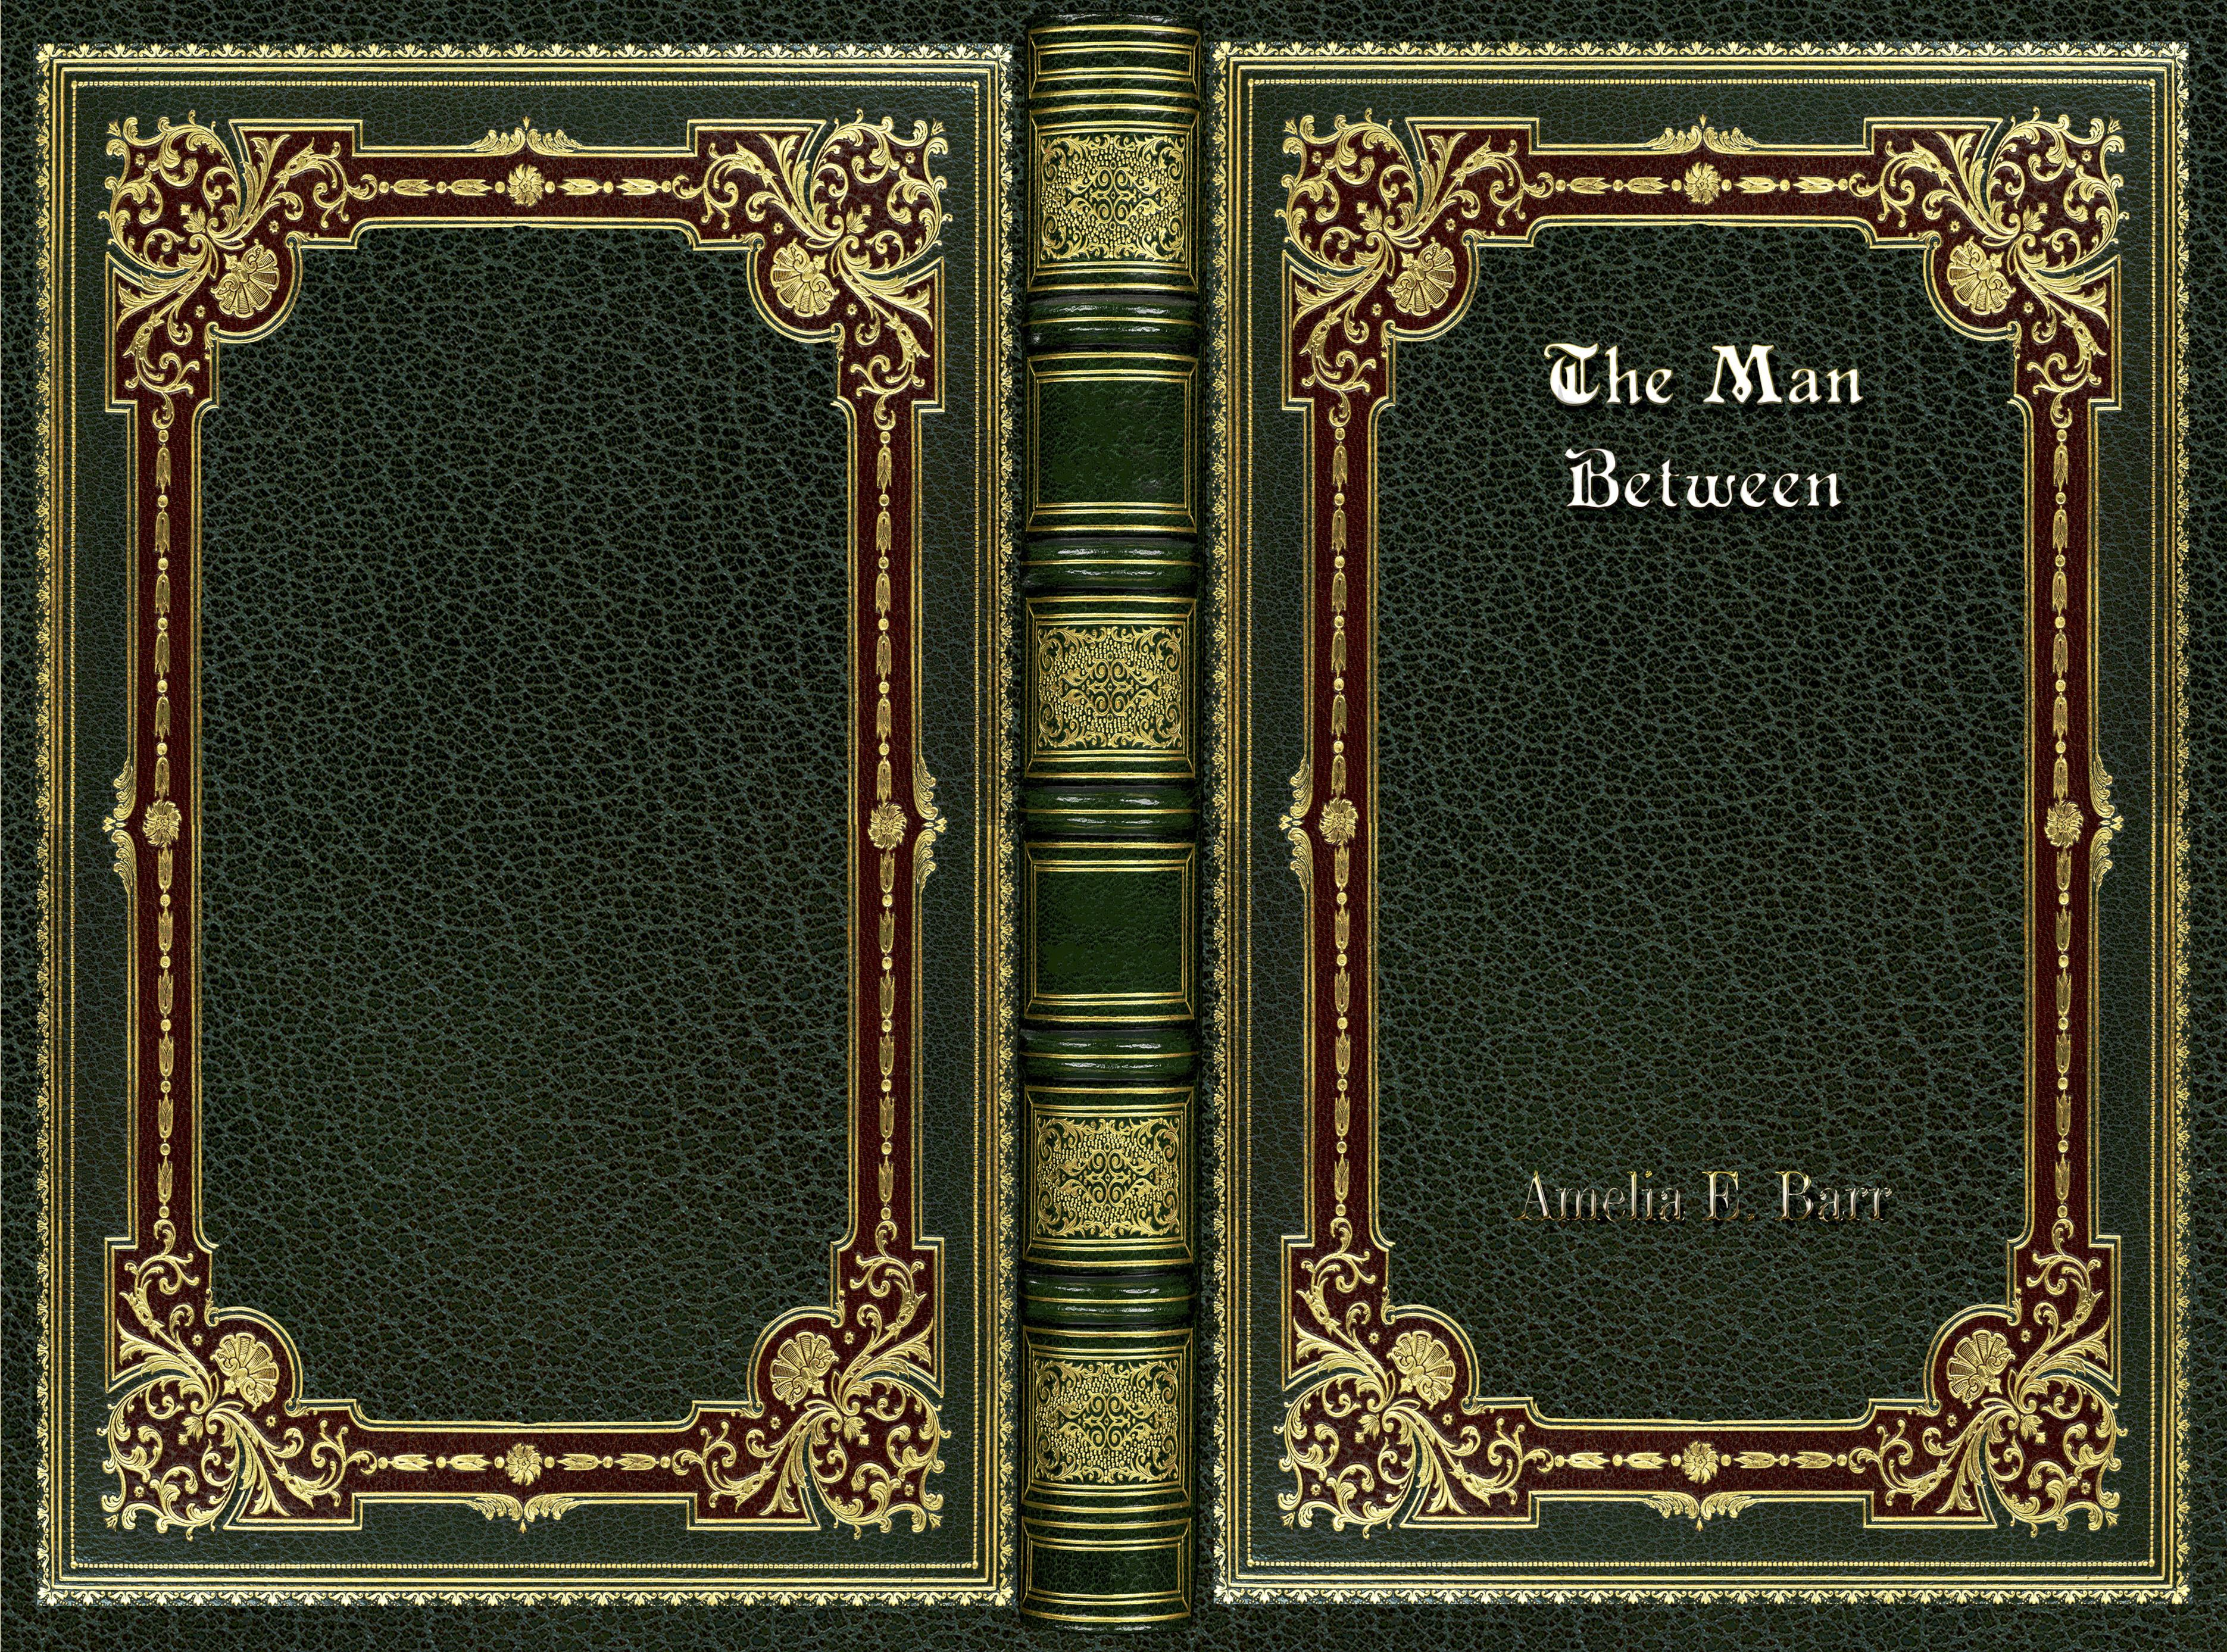 The Man Between cover image